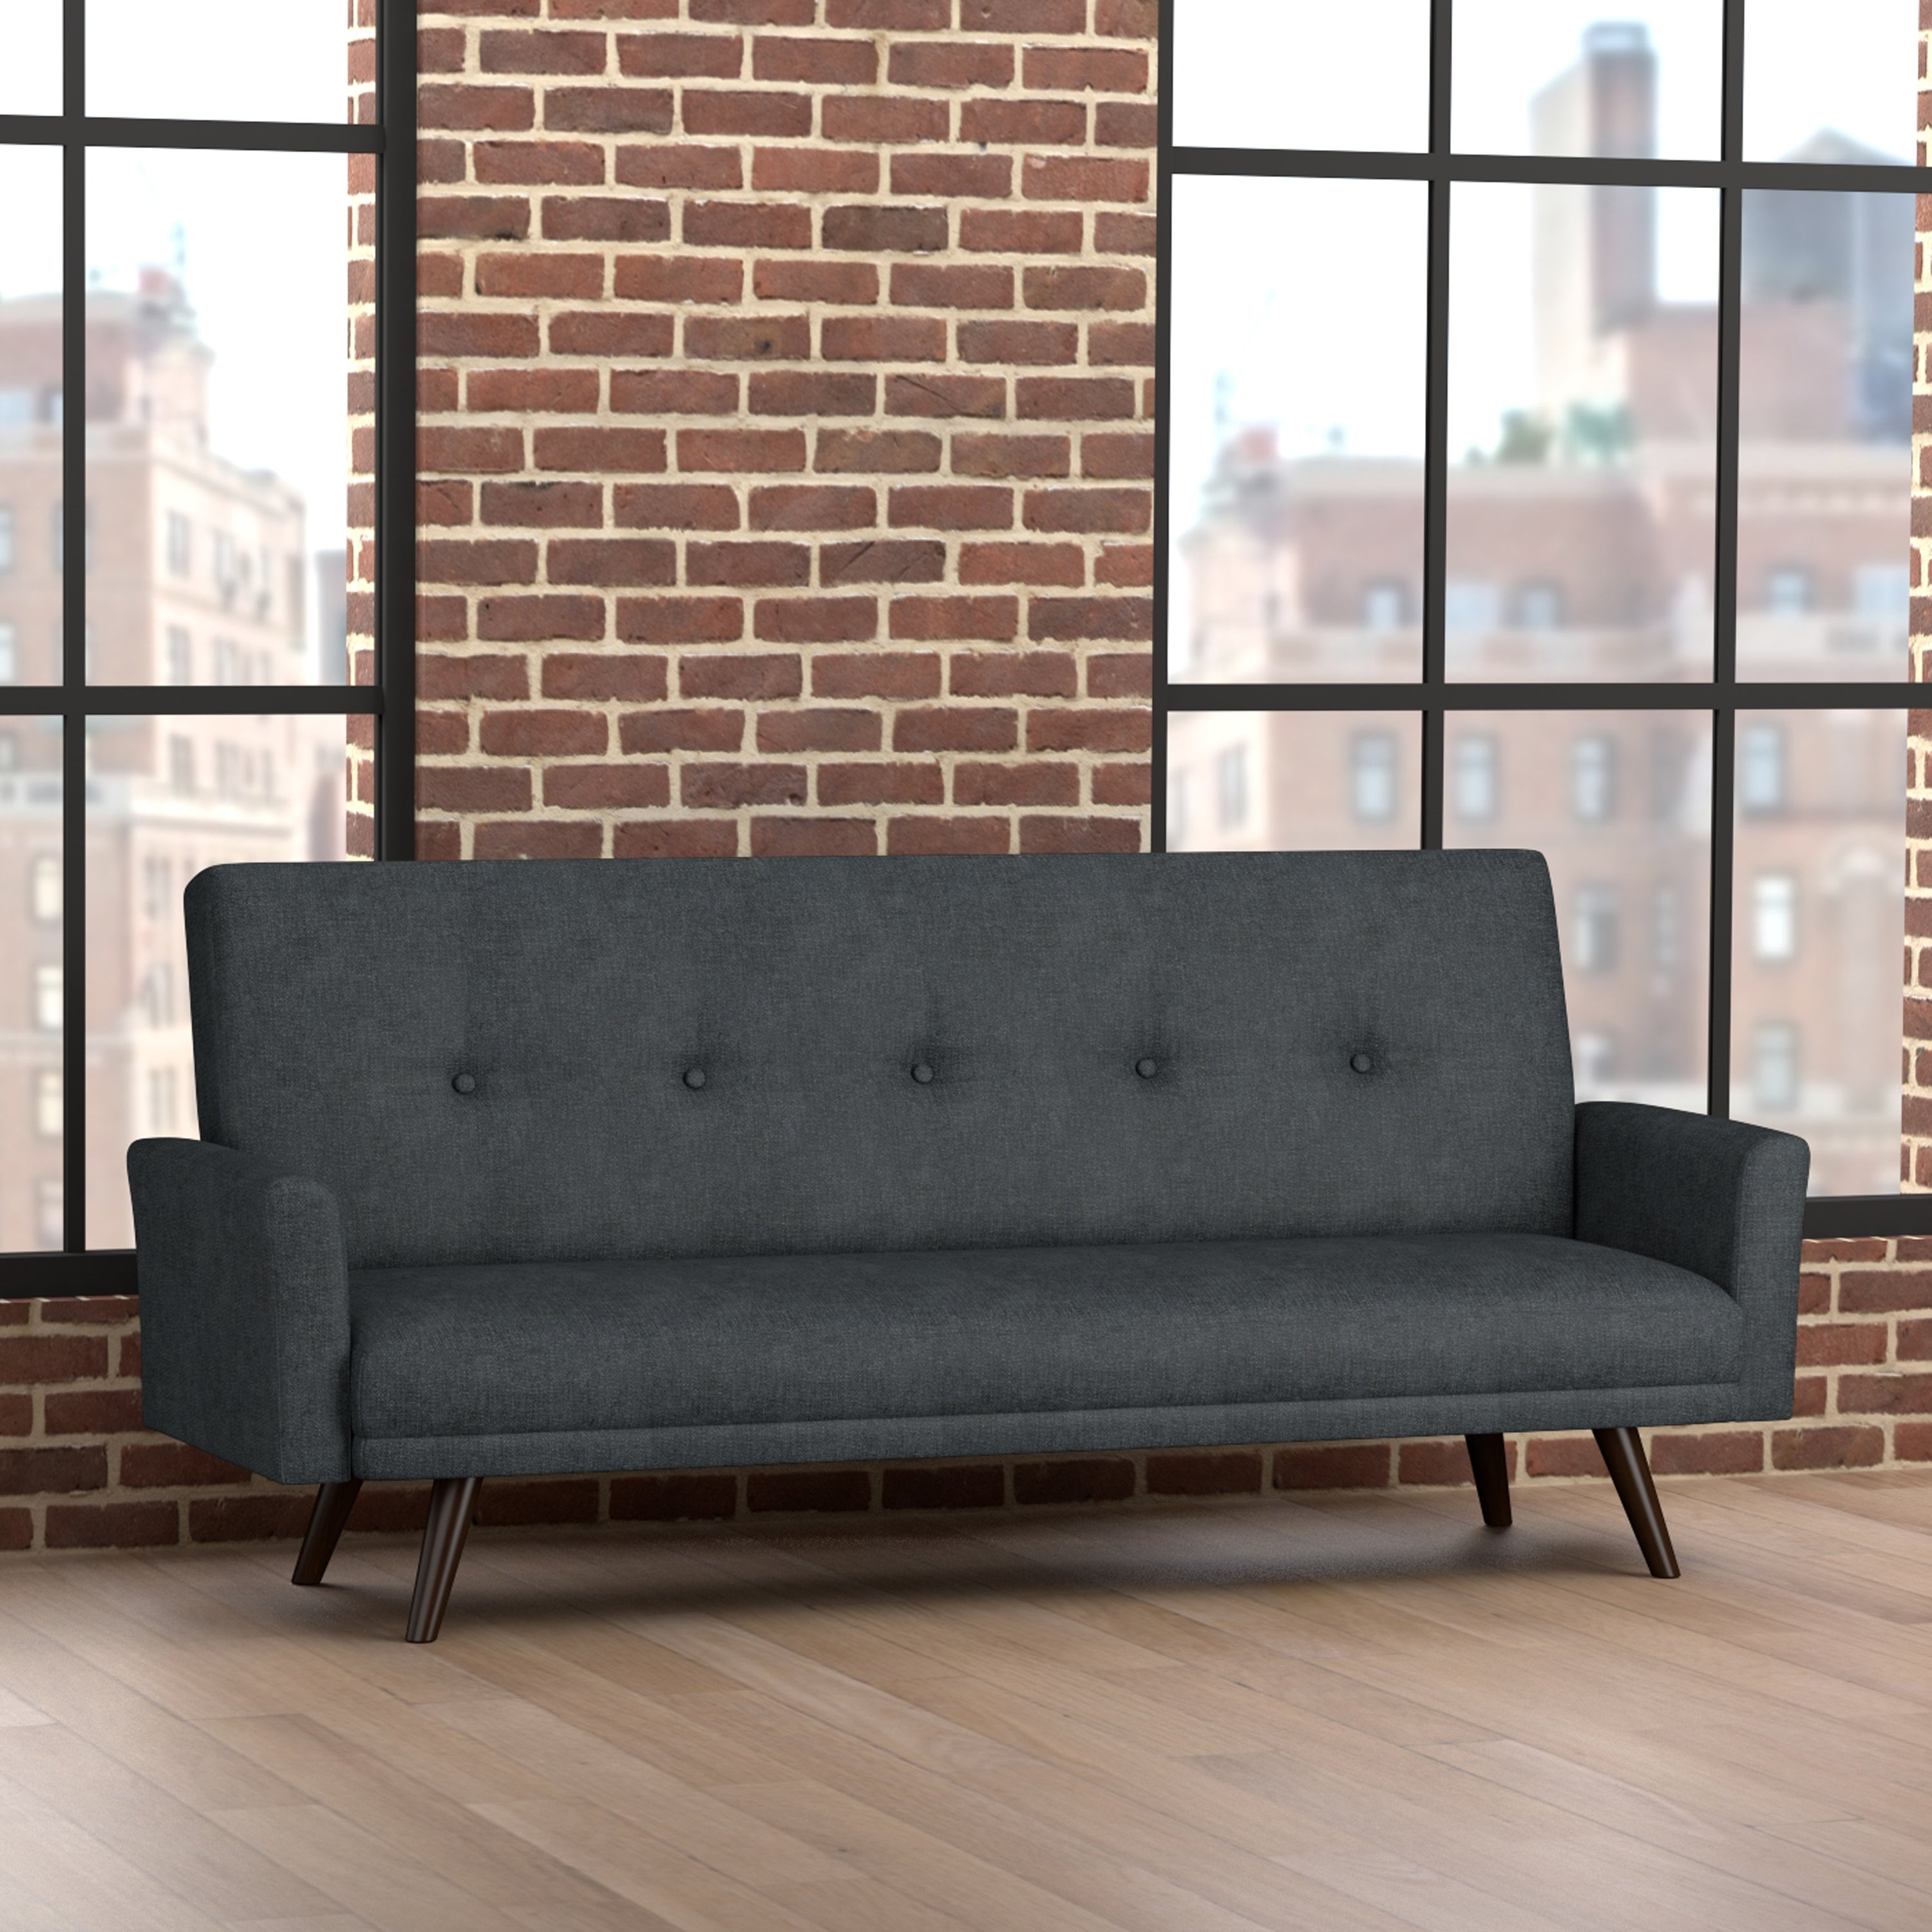 black handy bed can sofa you living pin charcoal clack oakland linen futon click